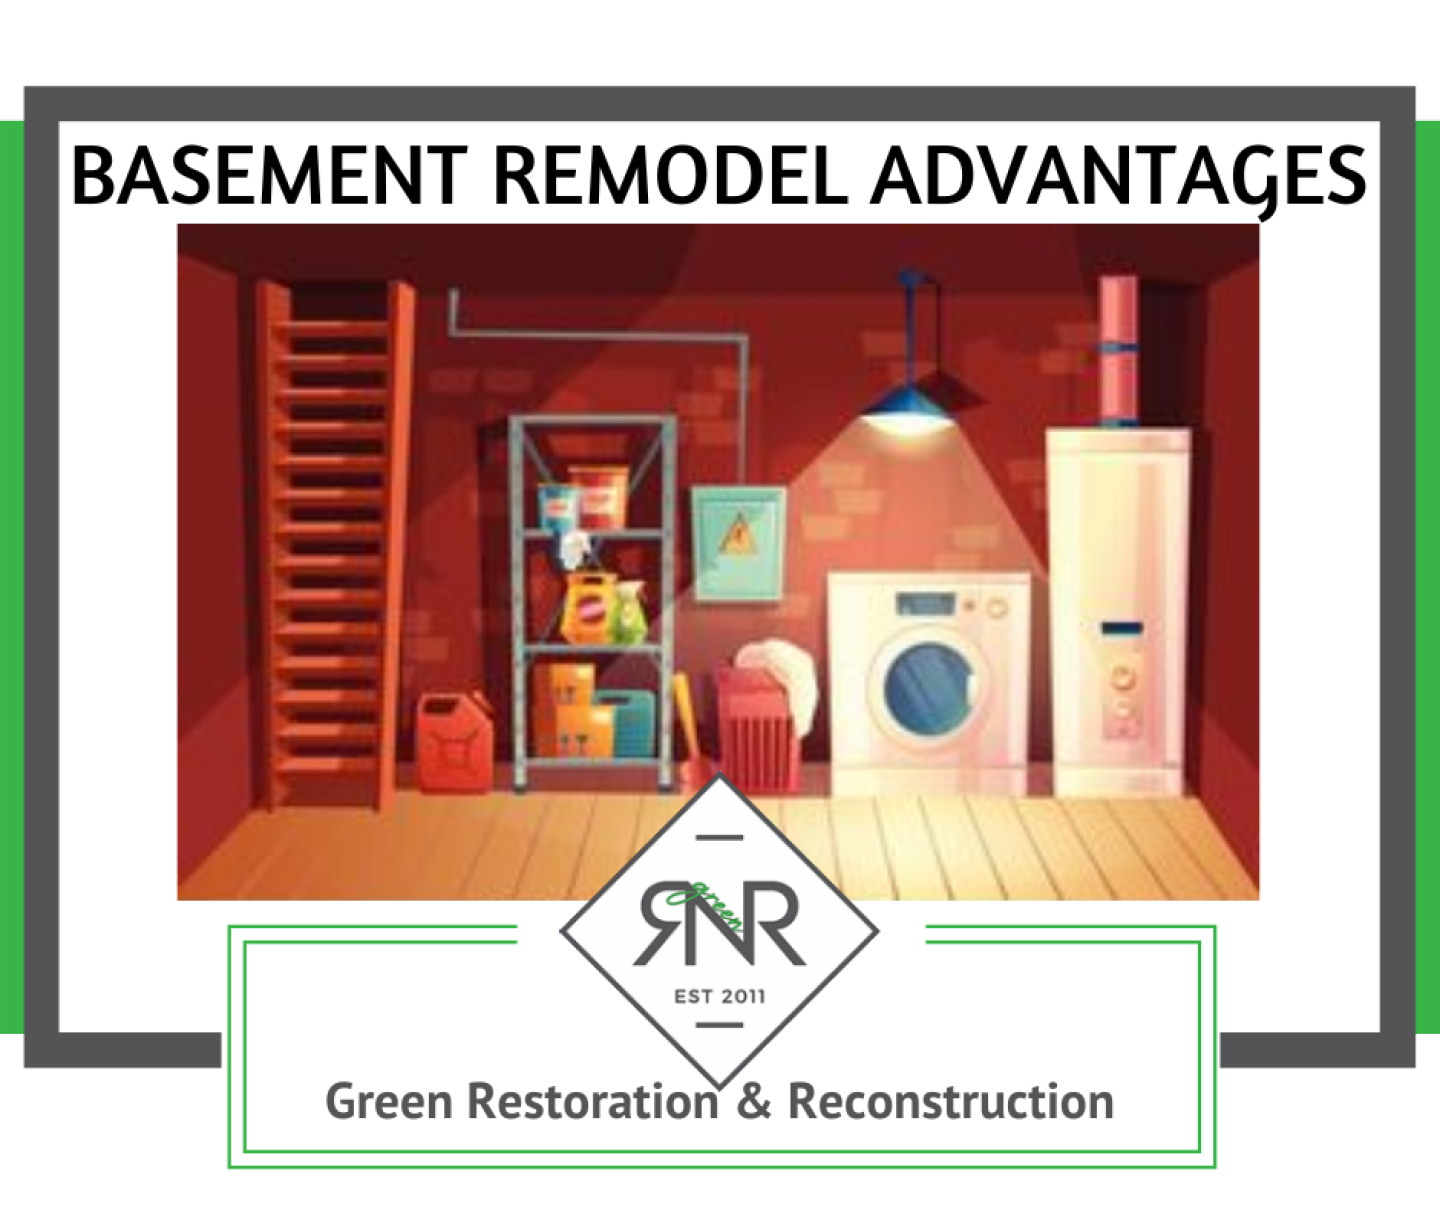 basement-remodel-canva